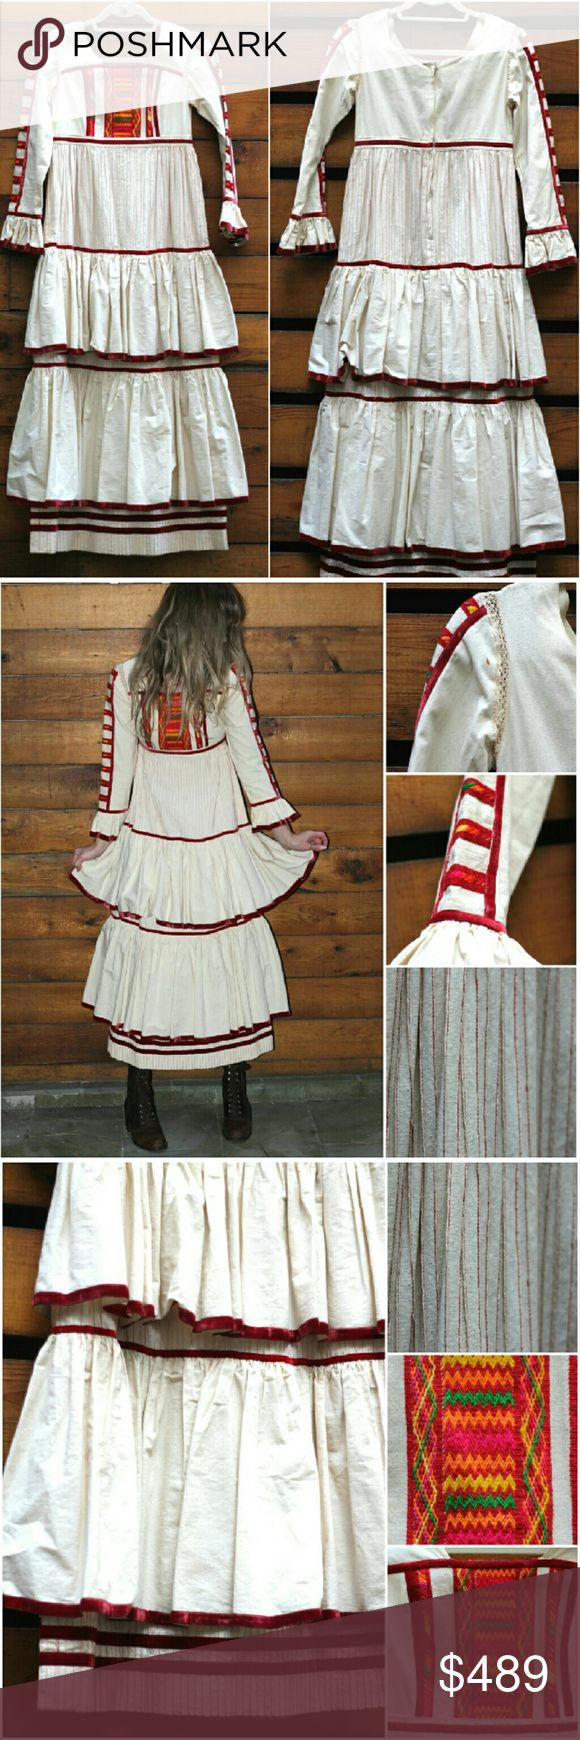 """Vintage 70s Boho Hippie Mexican Folk Art Dress Most incredible work of art dress w/ exquisite details  Stunning Embroidery - velvet piping - ruffle tiers at skirt & wrist -sturdy fabric back zip Disenado con carino por Georgia Charuhas - dry clean. Est size xs/s -was a lil snug around the bust/back area on the model (32d) meas below.  Has a some pale tea colored stains on the ivory fabric- couple on the sleeve, one near the colored patchwork section of the bodice. One 1/4"""" rust colored stain…"""